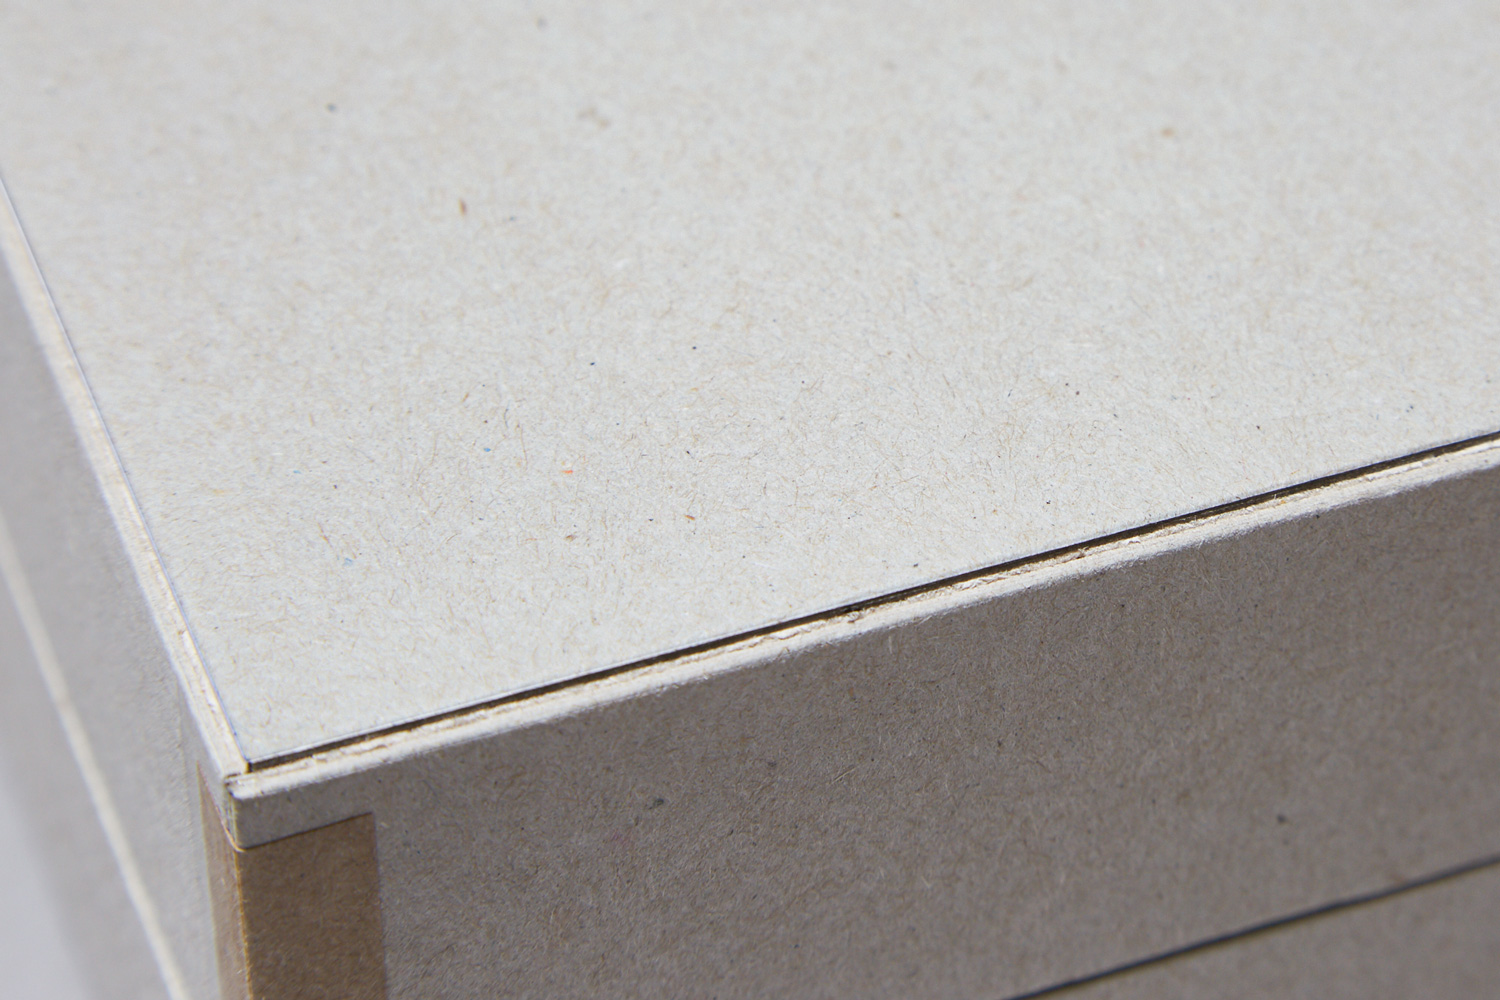 Progress Packaging Greyboard Paper Over Board Bespoke Luxury Custom Box Boxes Manufacturing Production